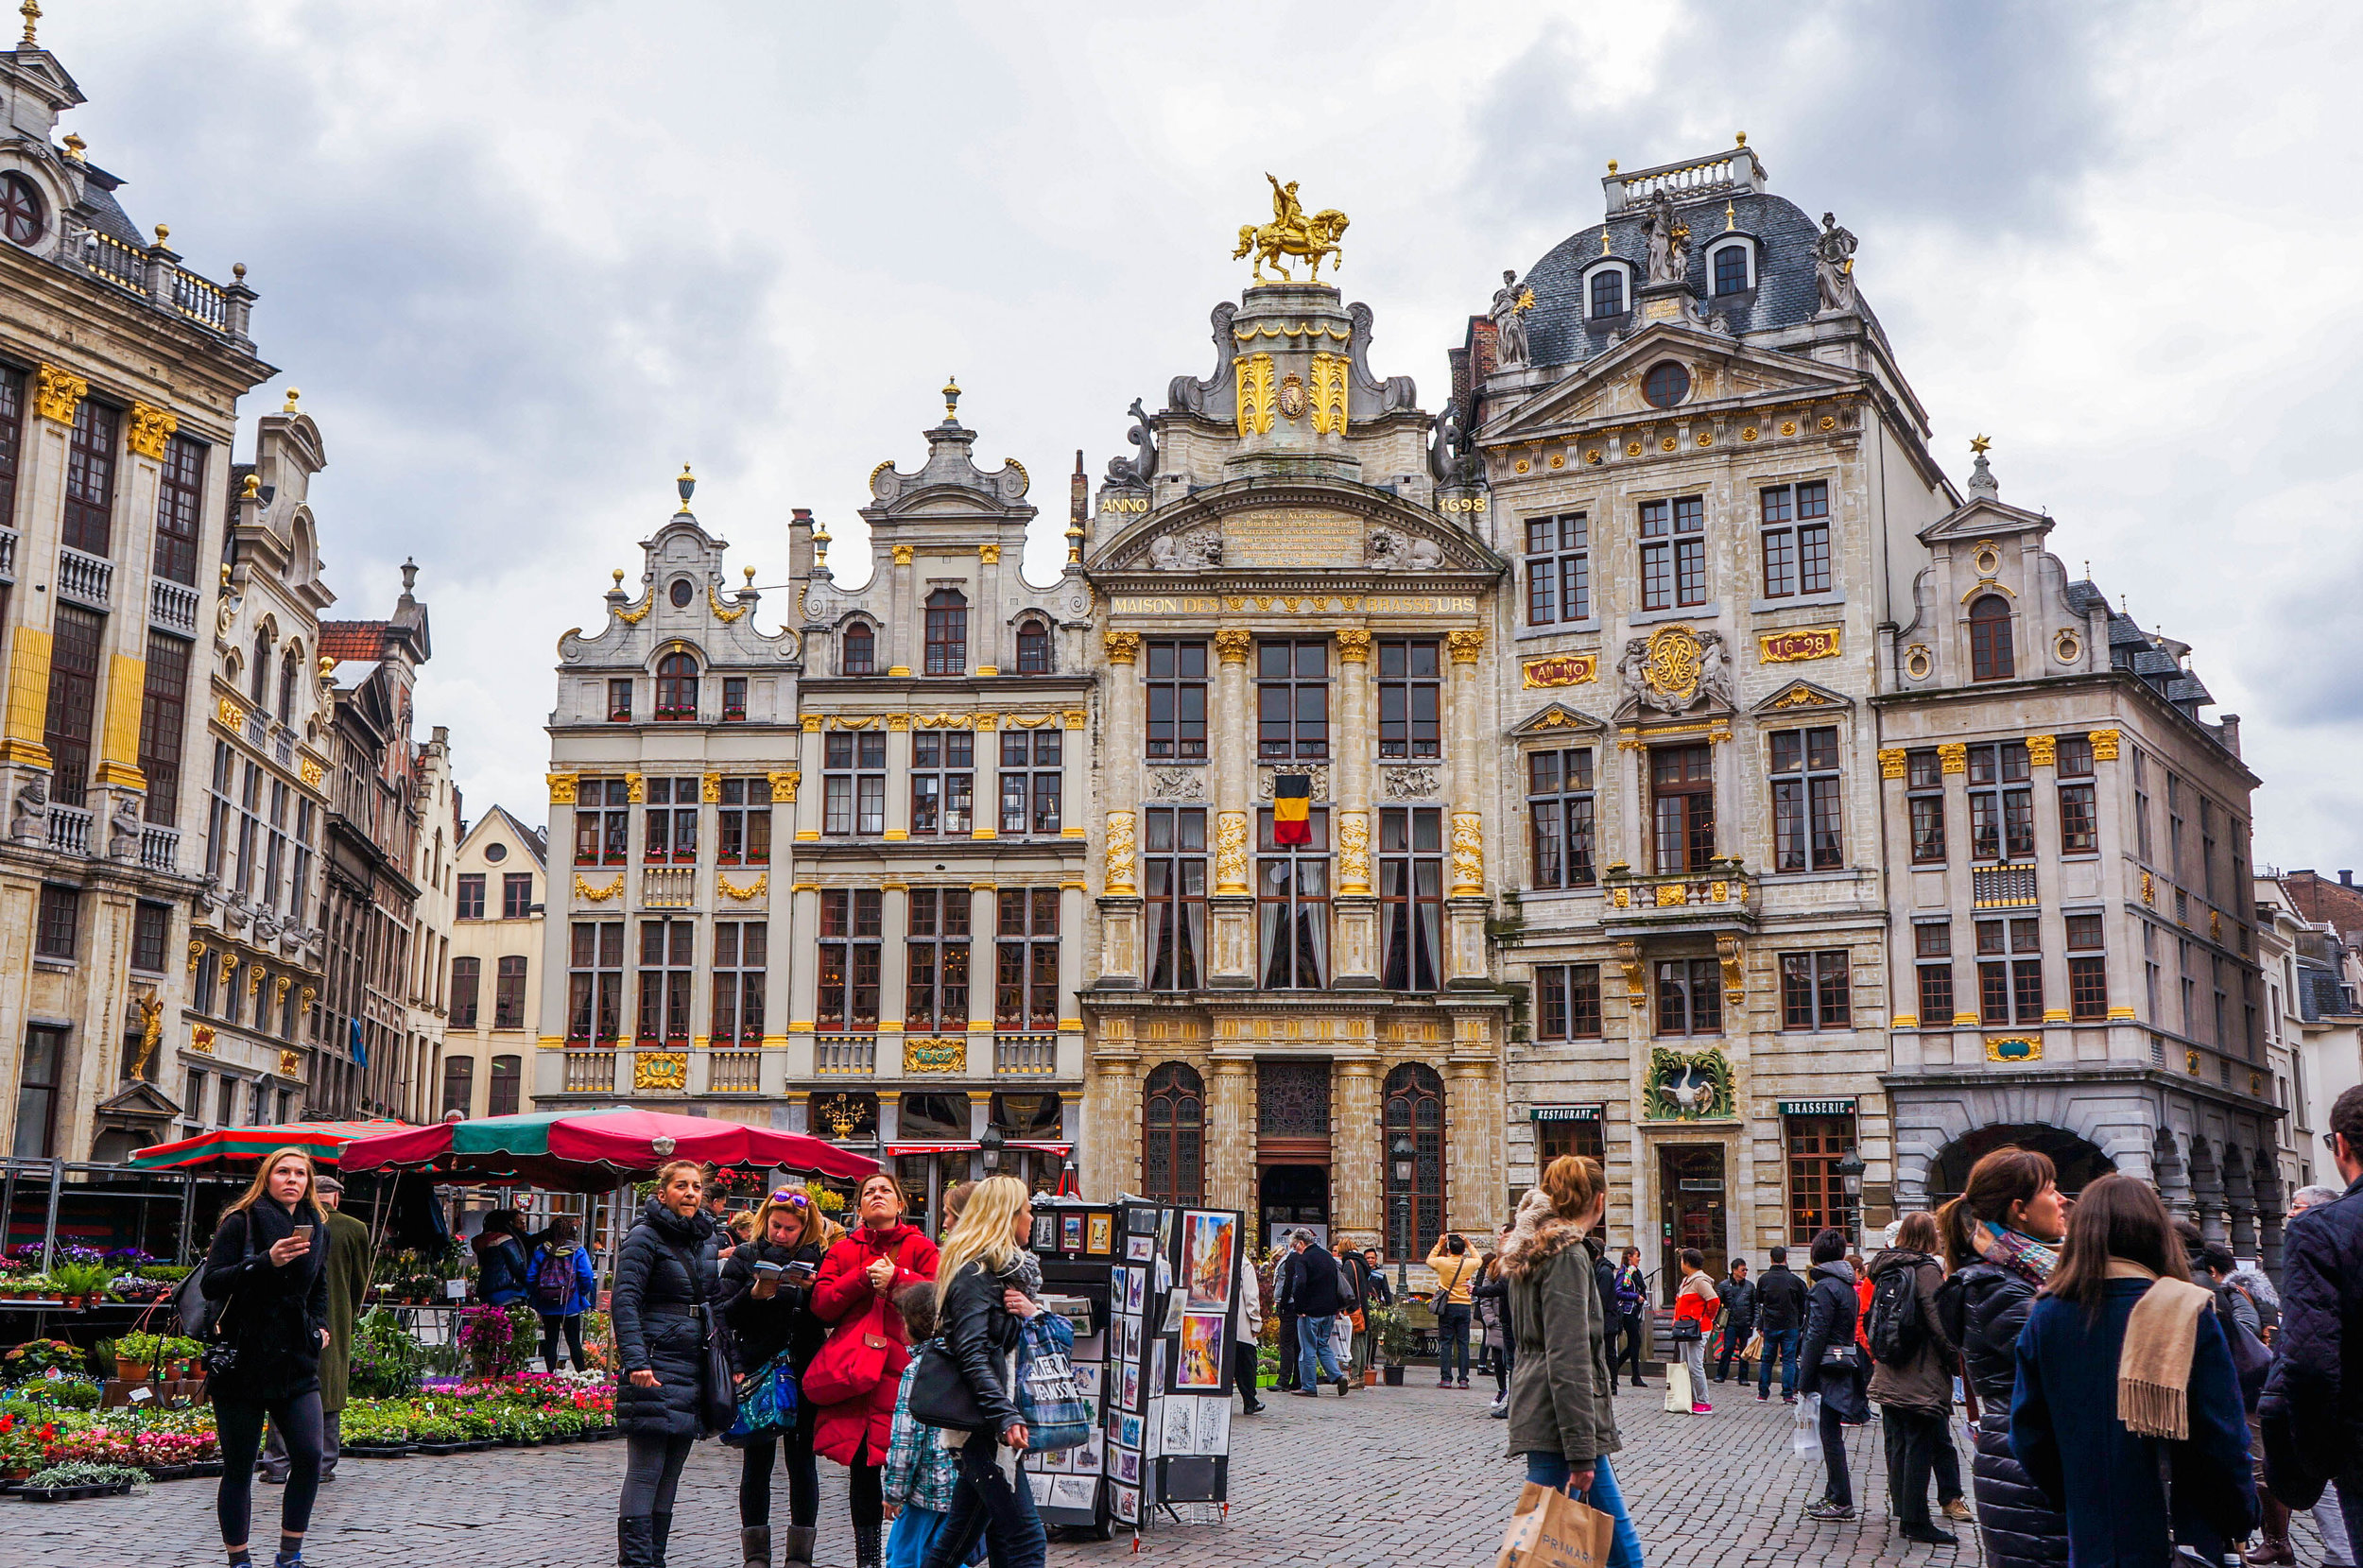 The Grand Place also called Grote Markt